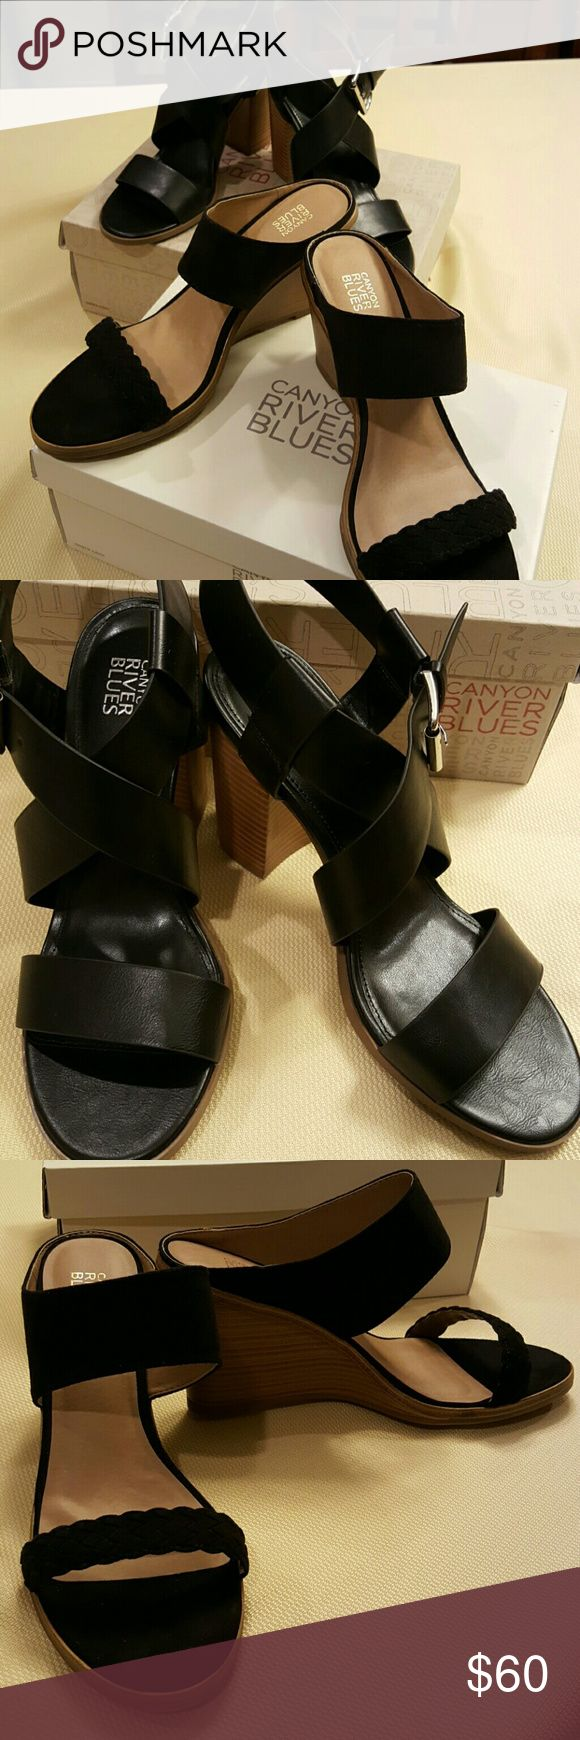 """'Final Sale' Bundle 2 pair Canyon River Blues Shoe Brand new still in box. 4"""" heel on both. Canyon River Blues  Shoes"""